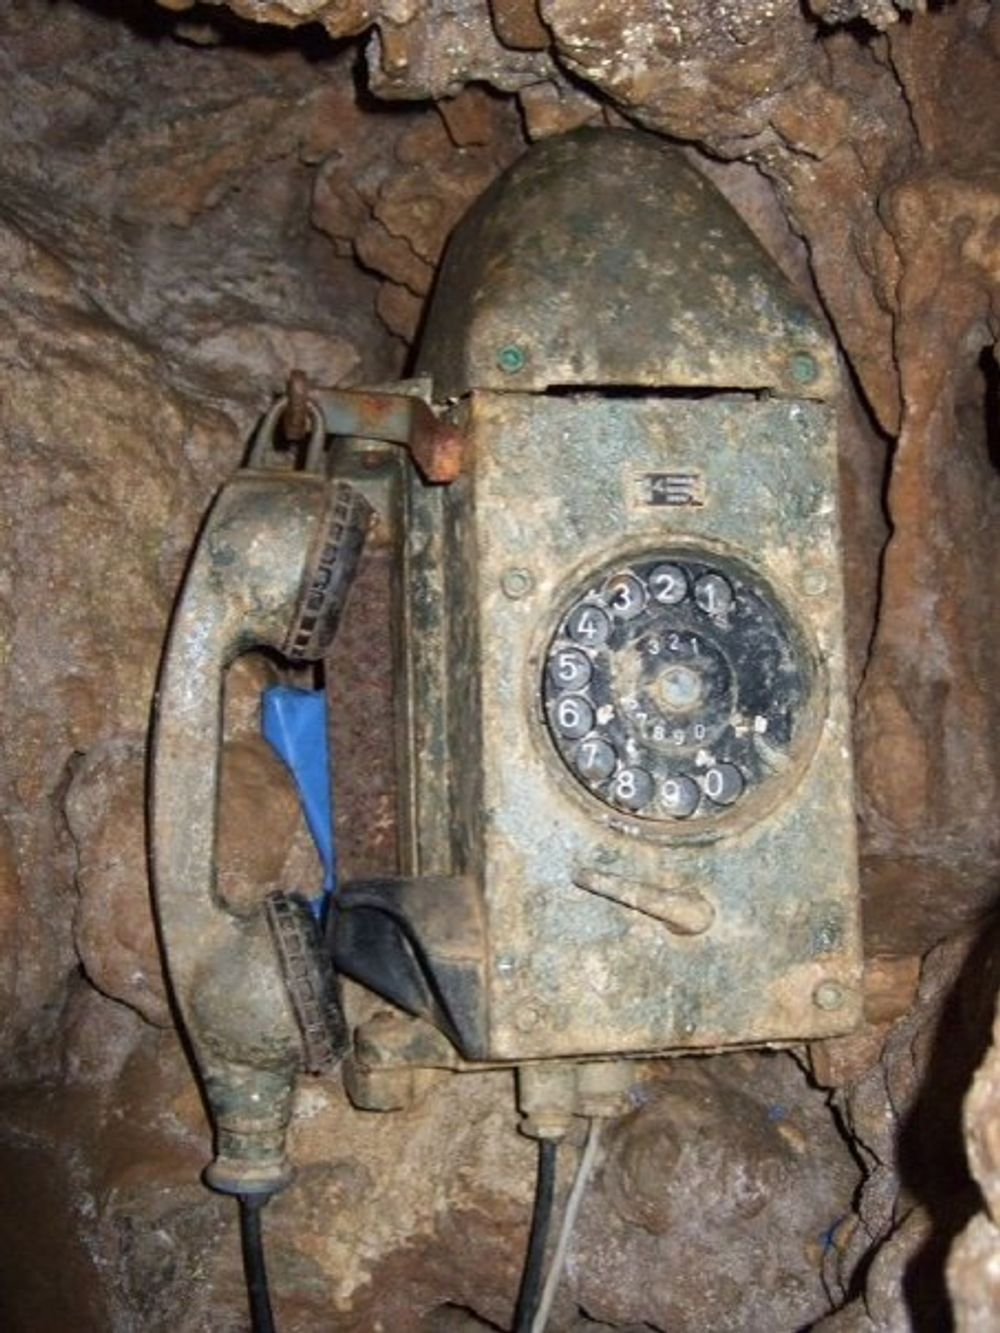 title: Old Vintage Phone in the Caves of Jeita